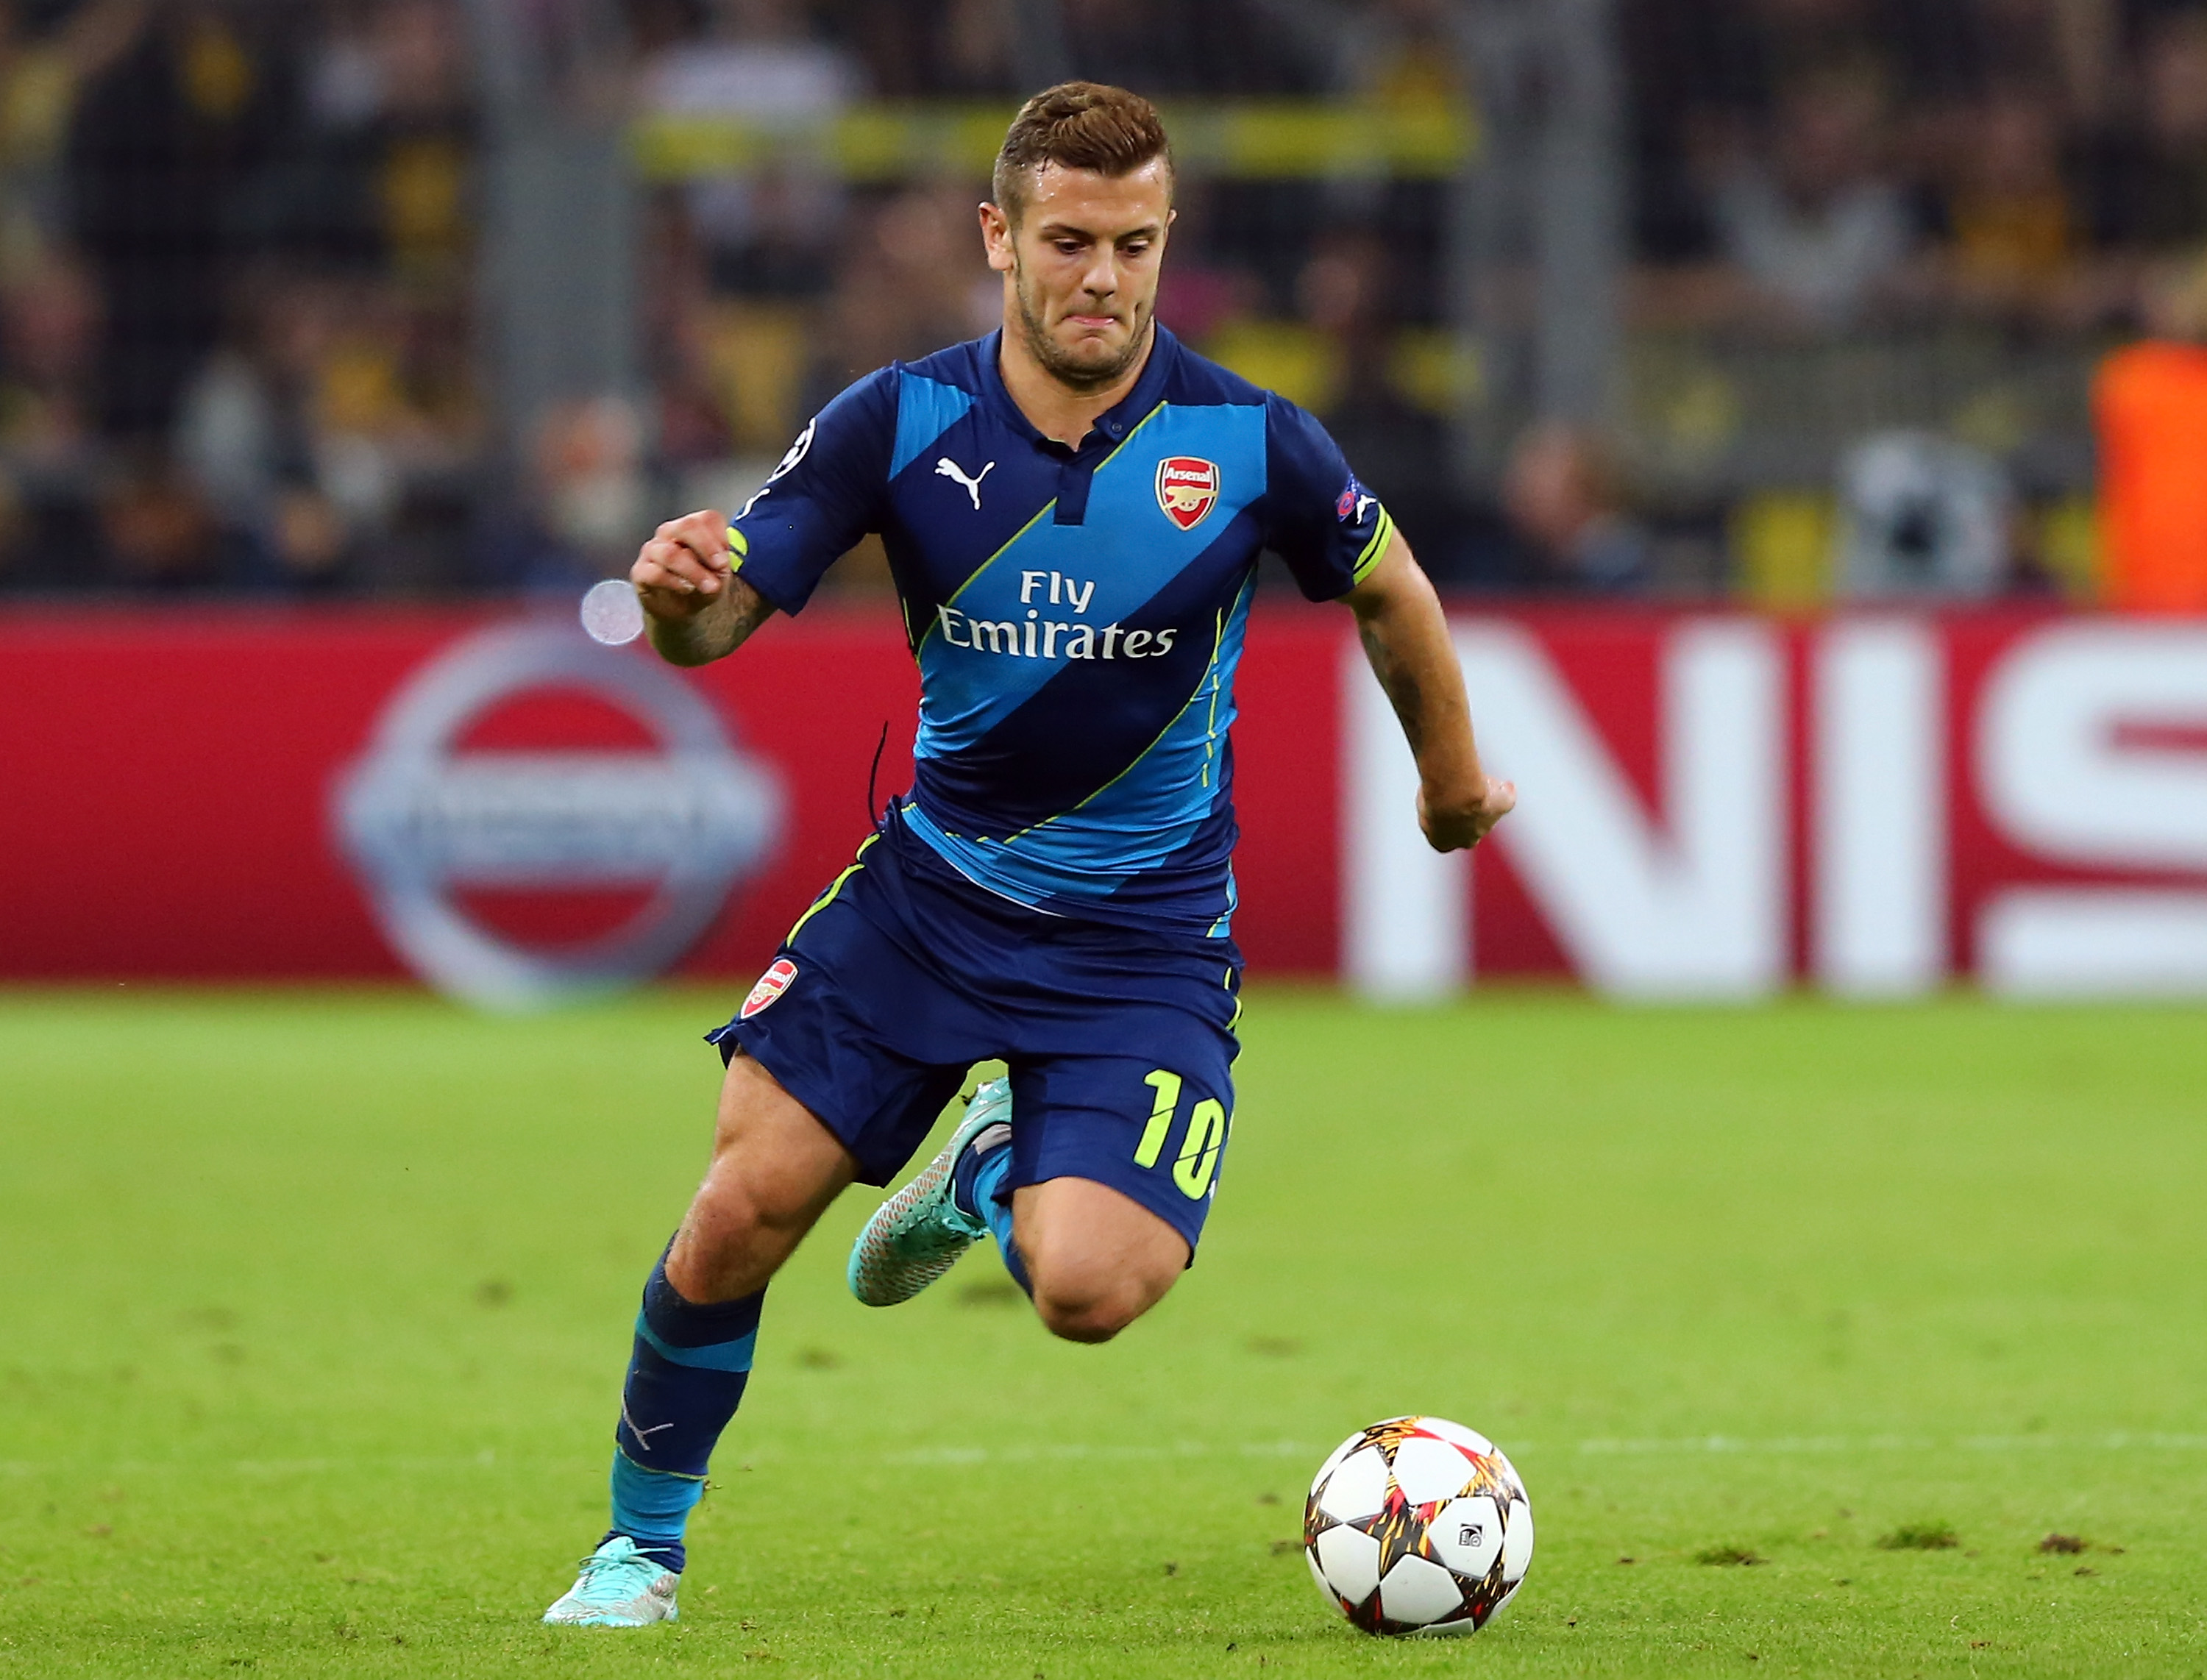 DORTMUND, GERMANY - SEPTEMBER 16: Jack Wilshere of Arsenal London runs with the ball the UEFA Champions League Group D match between Borussia Dortmund and Arsenal London at Signal Iduna Parkon September 16, 2014 in Dortmund, Germany. (Photo by Martin Rose/Bongarts/Getty Images)